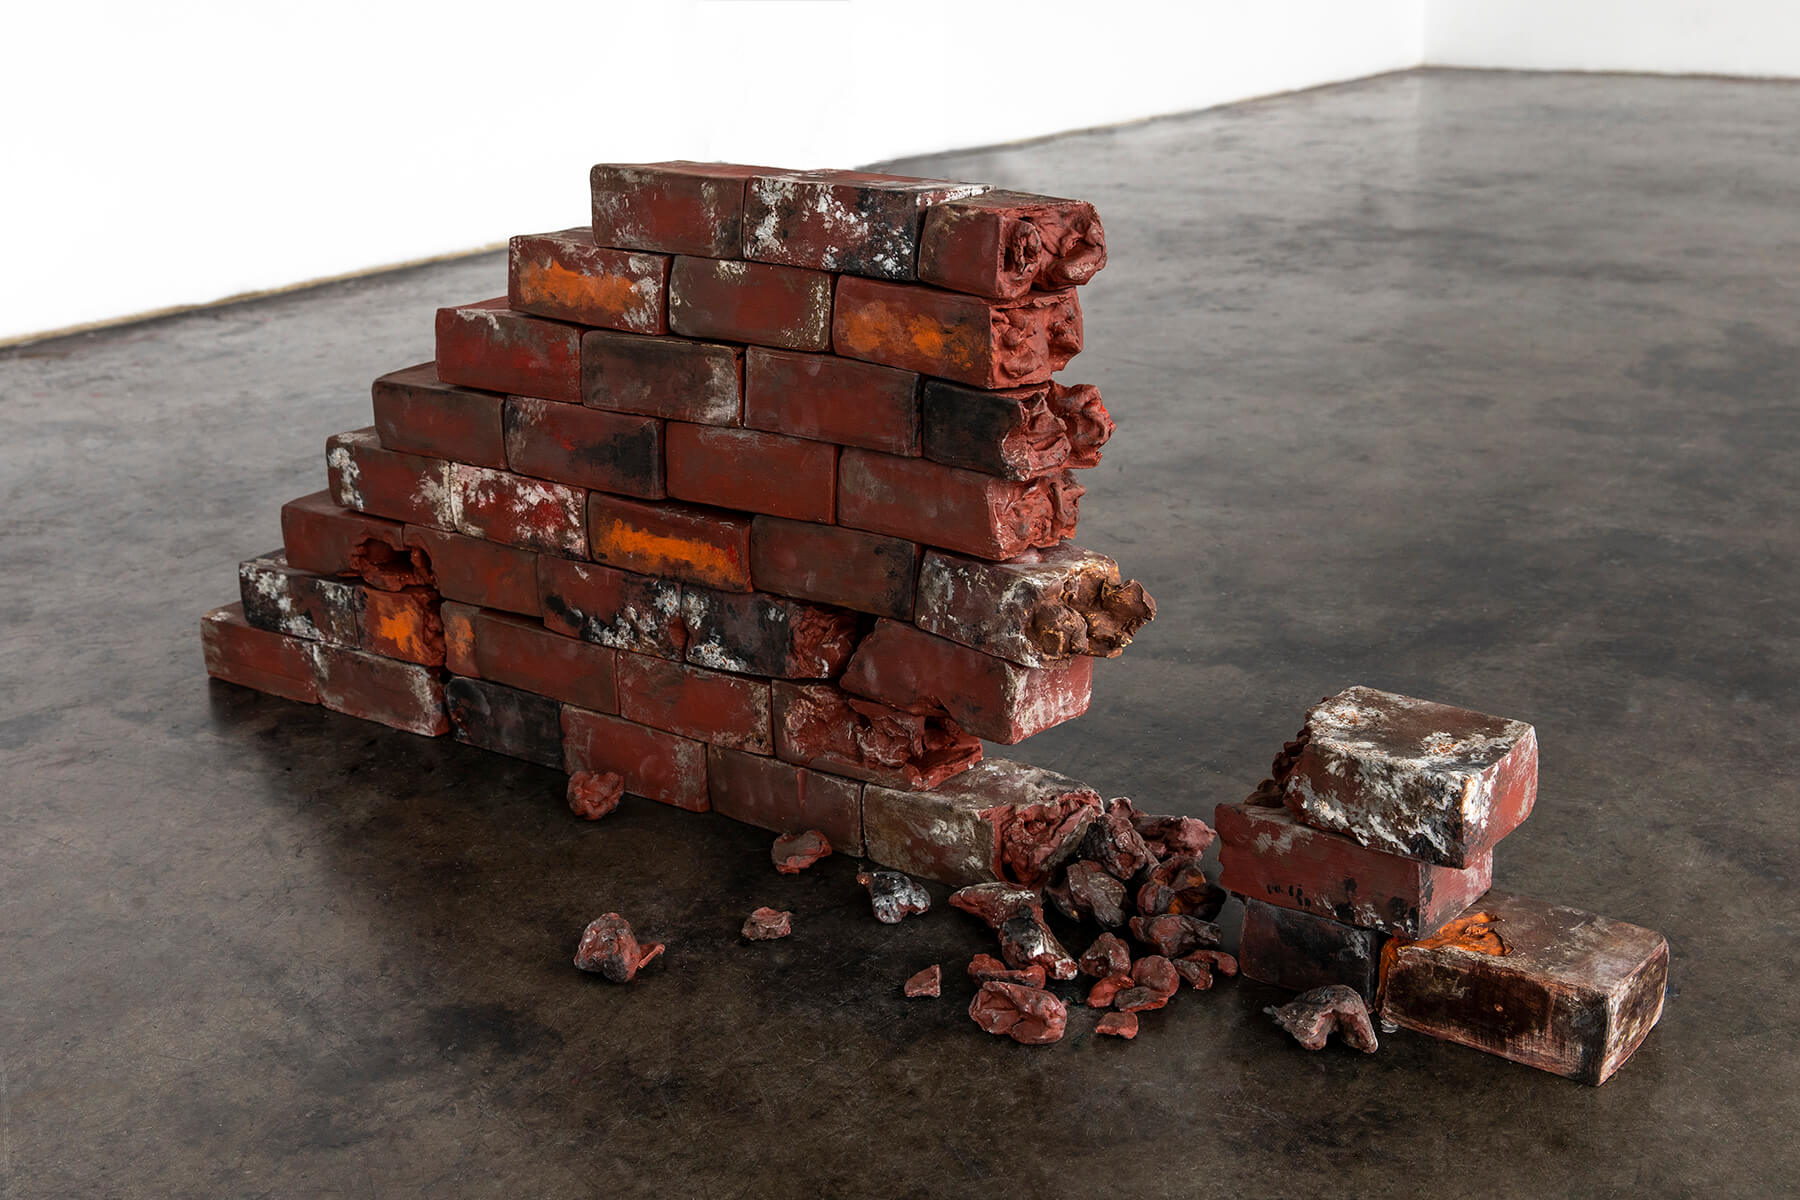 A photograph, interior to an art gallery. On the floor is a stack of rough bricks, mostly dark red but with some white, orange, and black paint. They are arranfed into a small triangular 'wall,' one brick thick, with a portion of the wall missing or collapsed, and on the smooth floor fragments of brick are scattered.